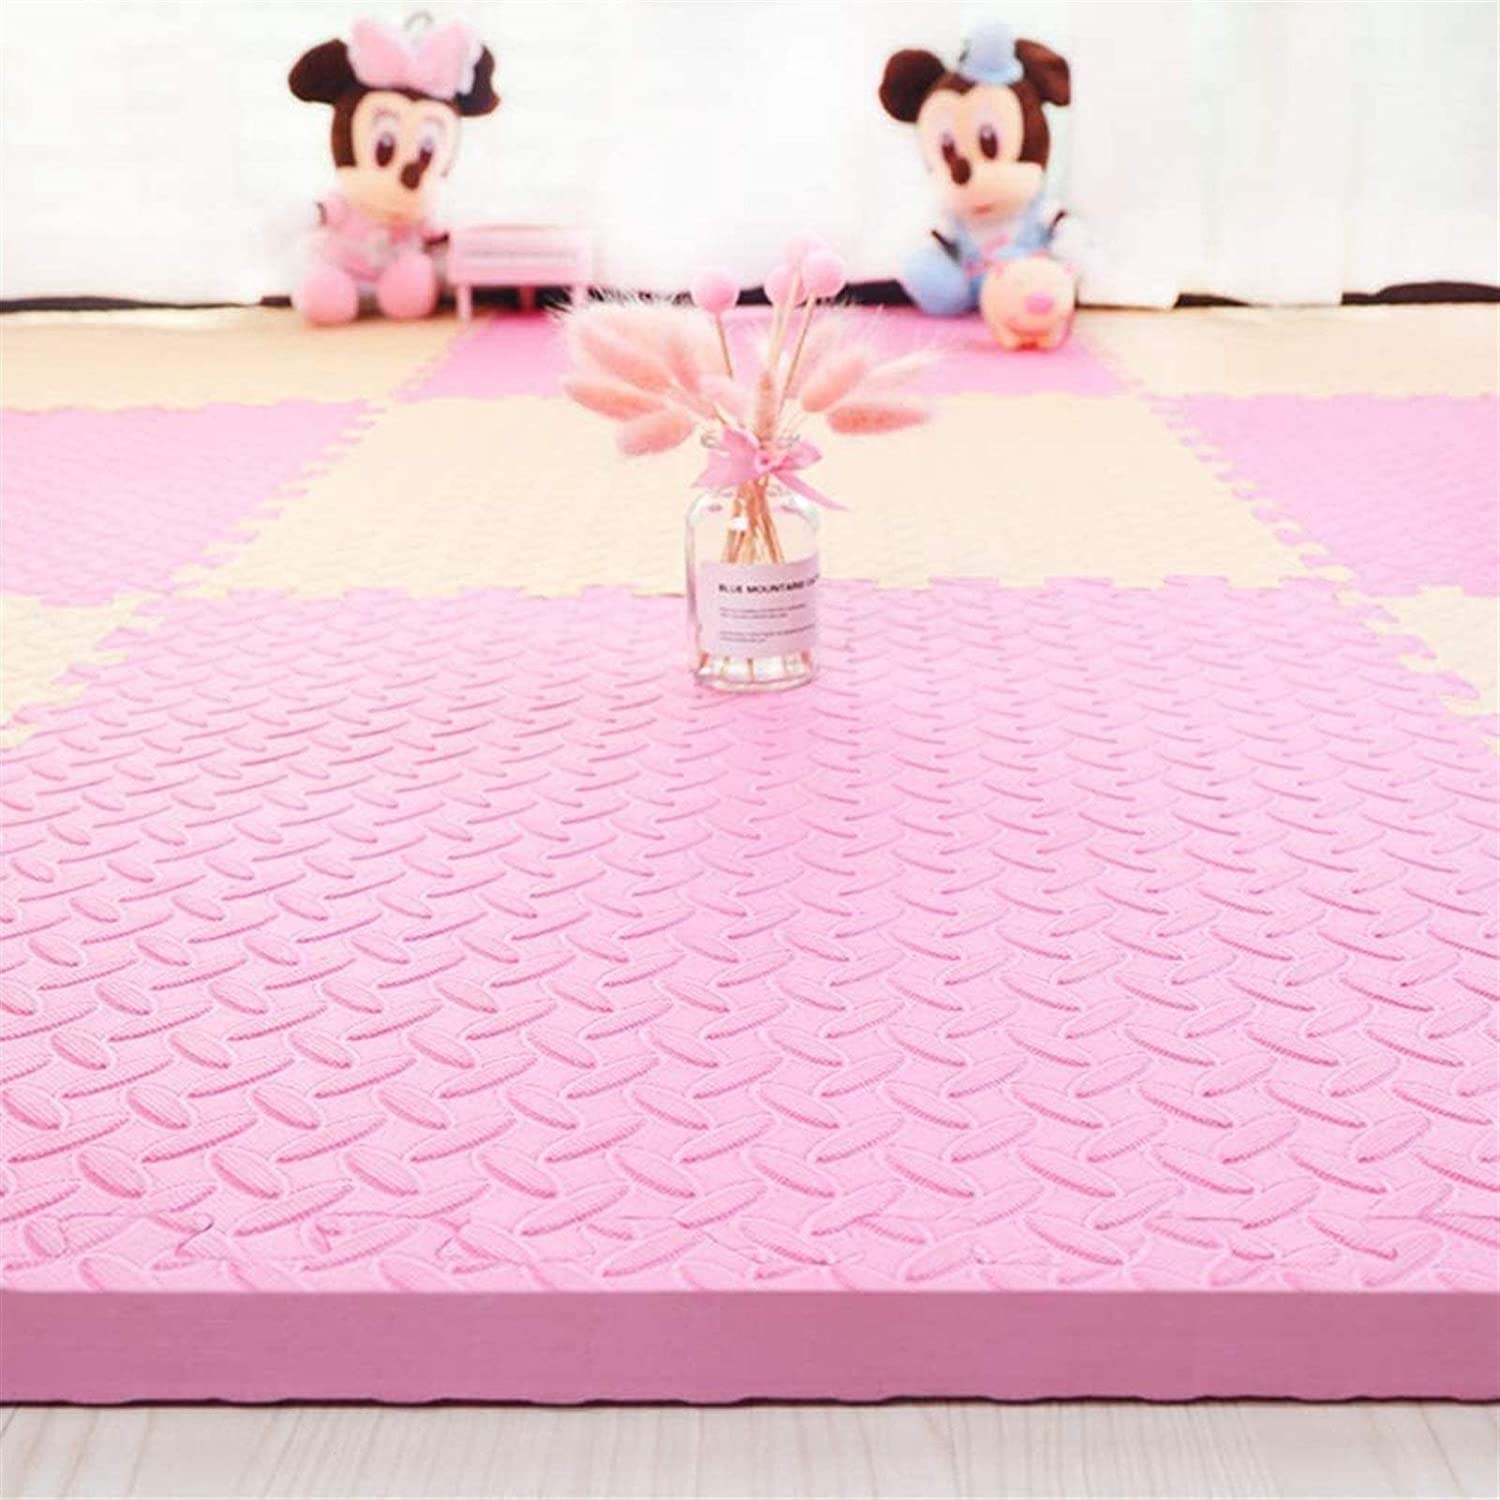 Puzzle Virginia Beach Mall Play Mats The Sports Waterproof Is Pad And Noise-R Now on sale